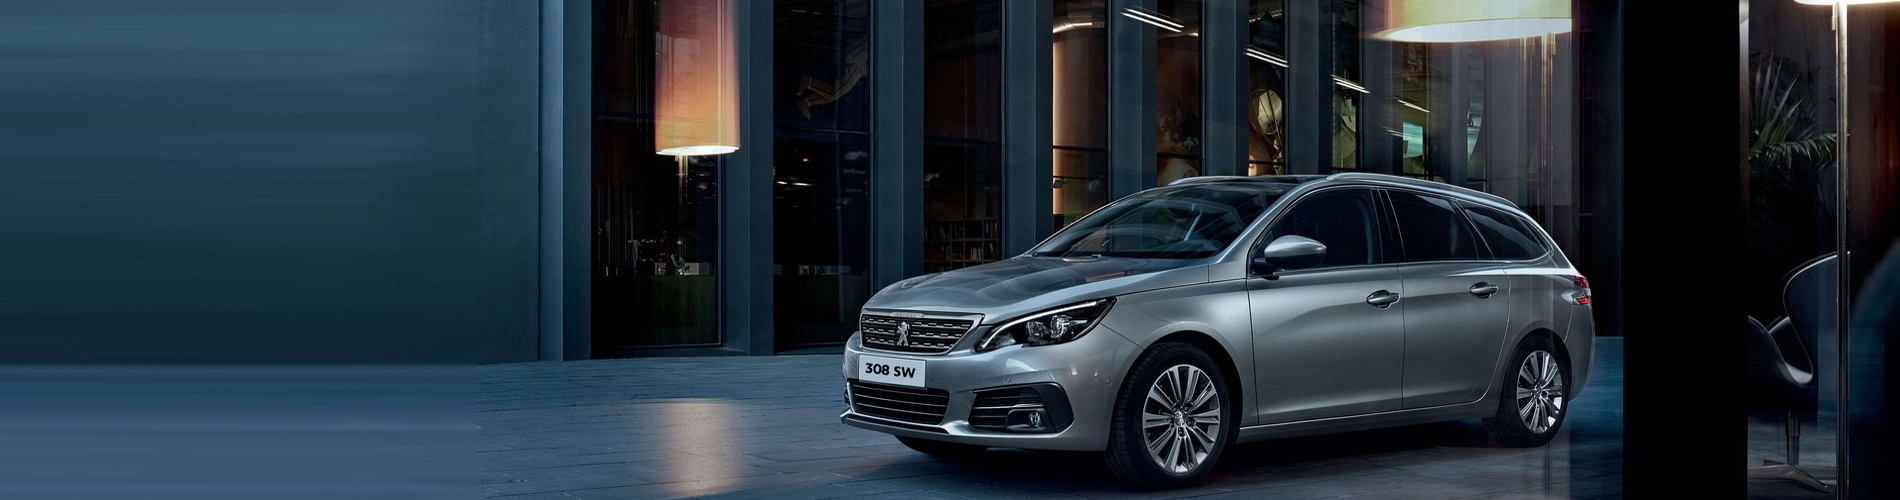 Peugeot 308 SW Wycliffe Peugeot Rugby